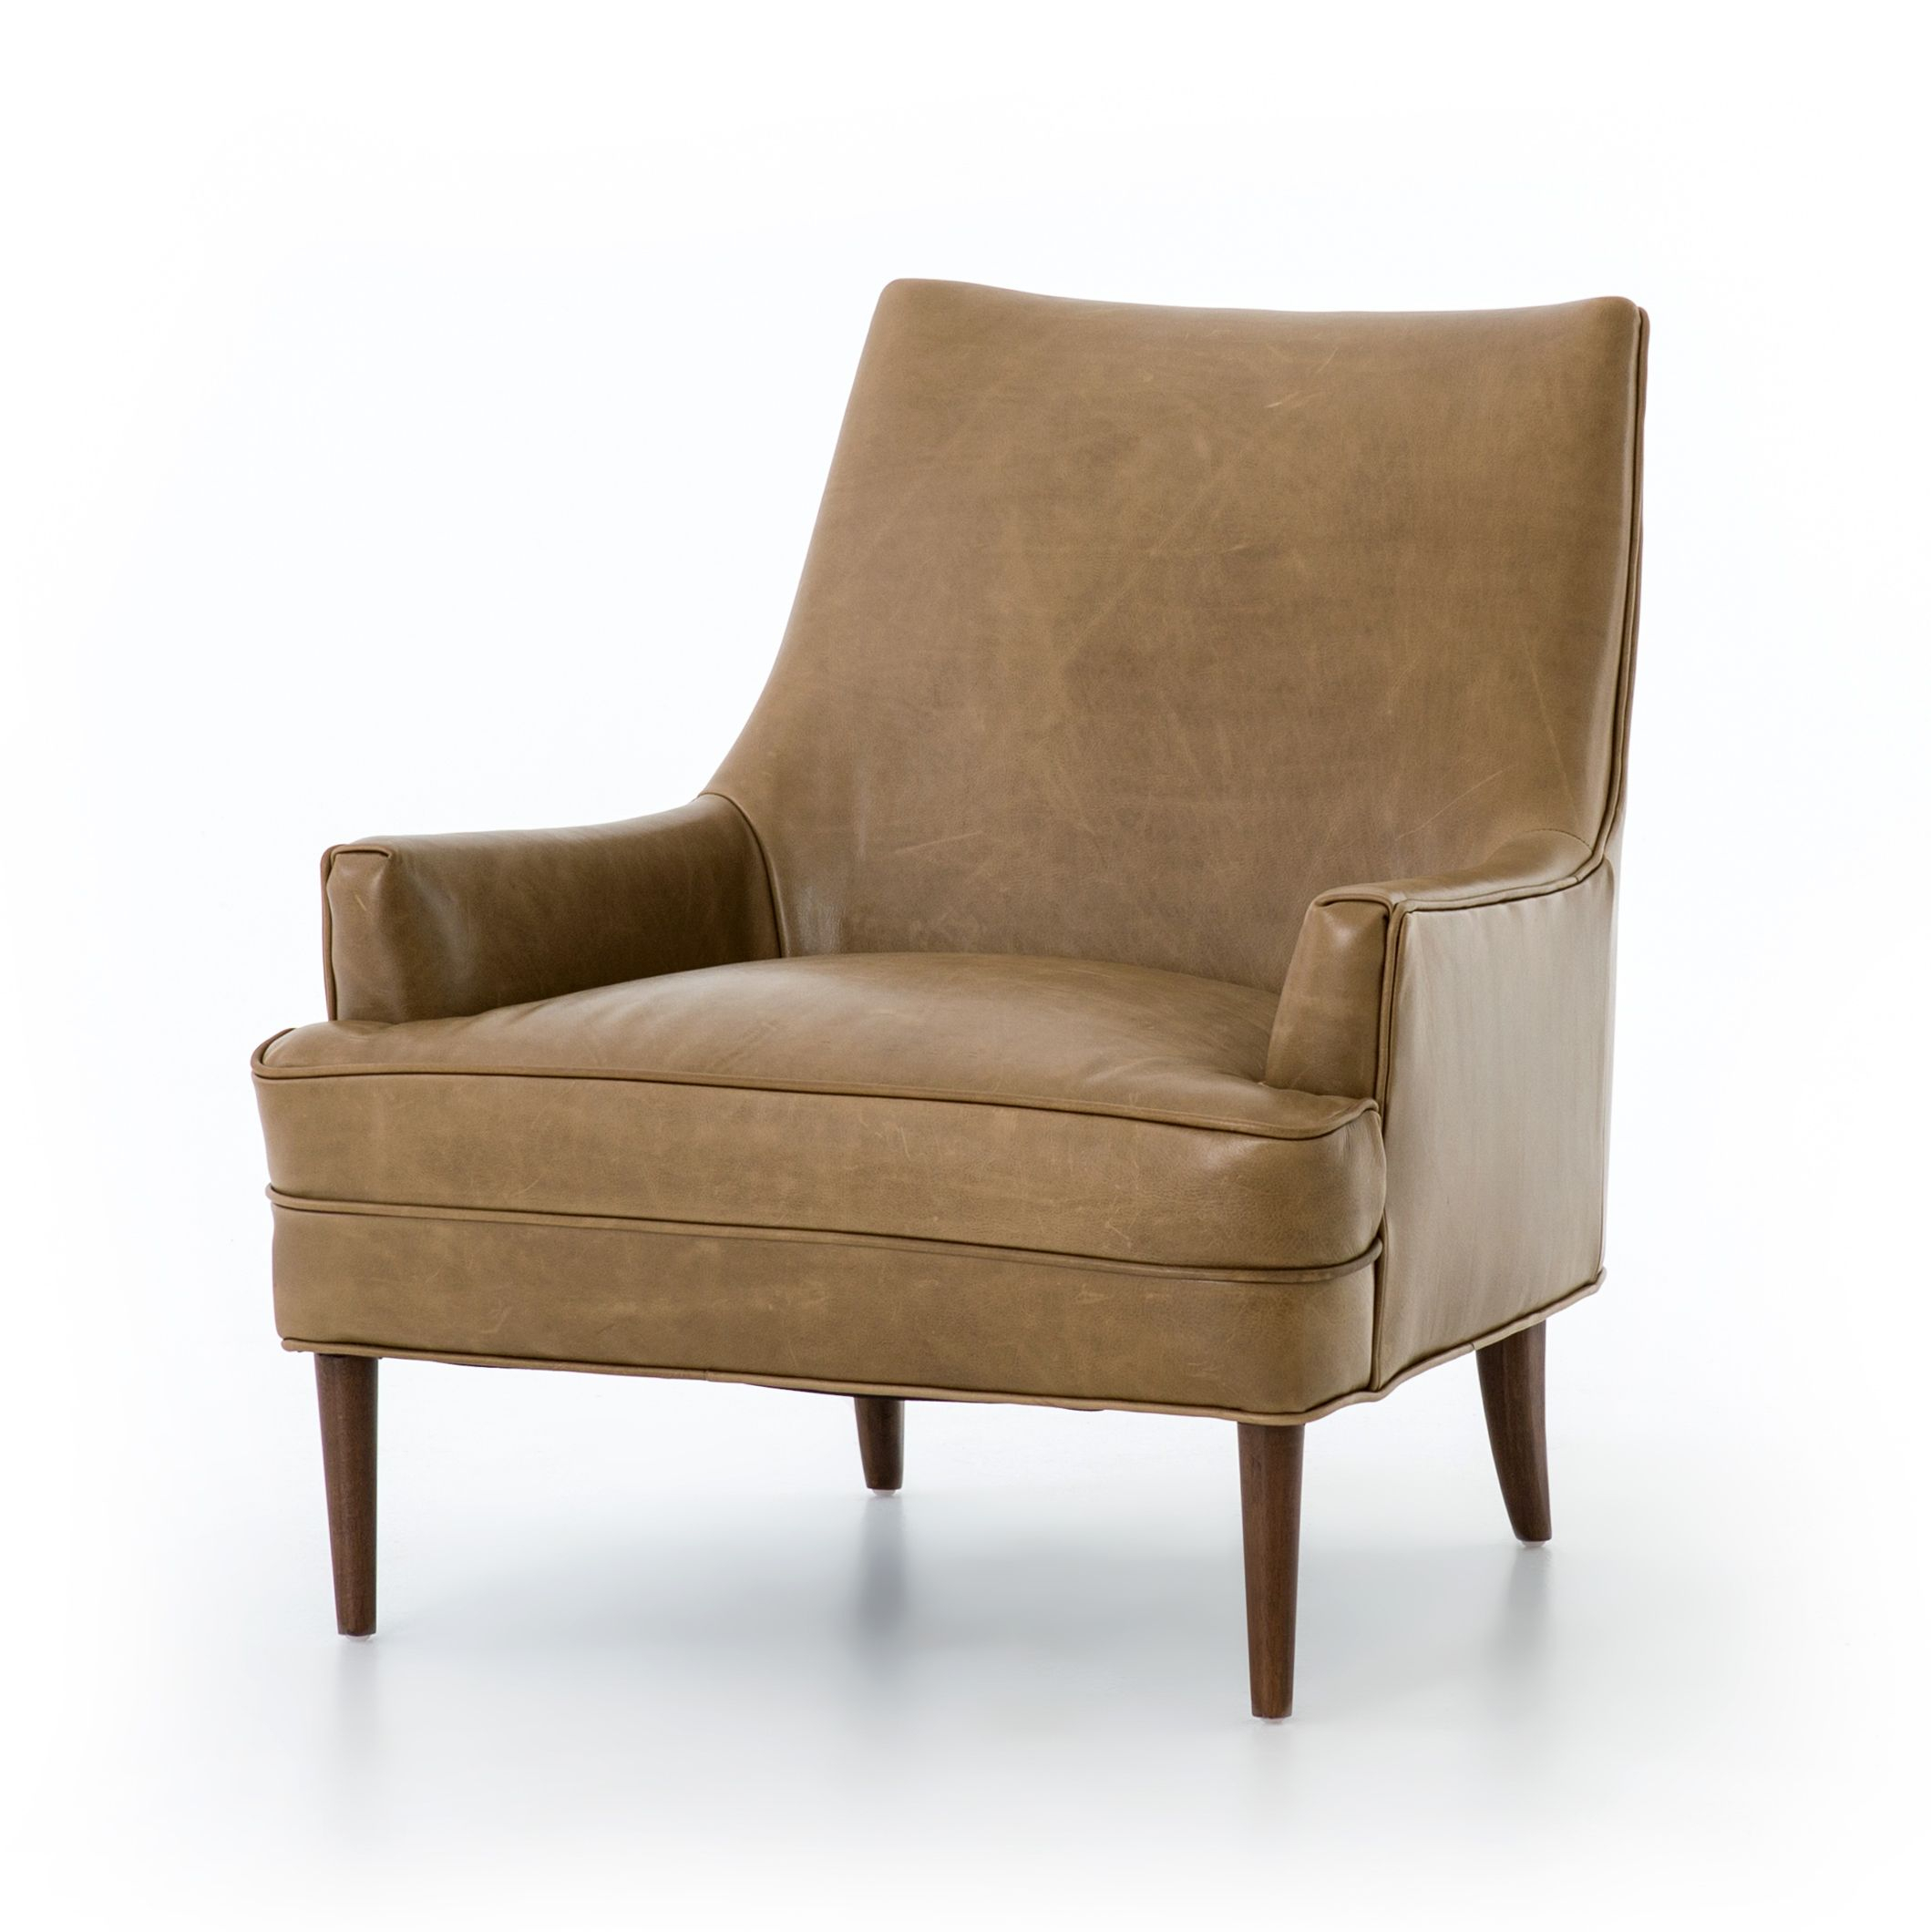 Danya Chair | Leather Armchair, Leather Accent Chair Intended For Marisa Faux Leather Wingback Chairs (View 9 of 15)